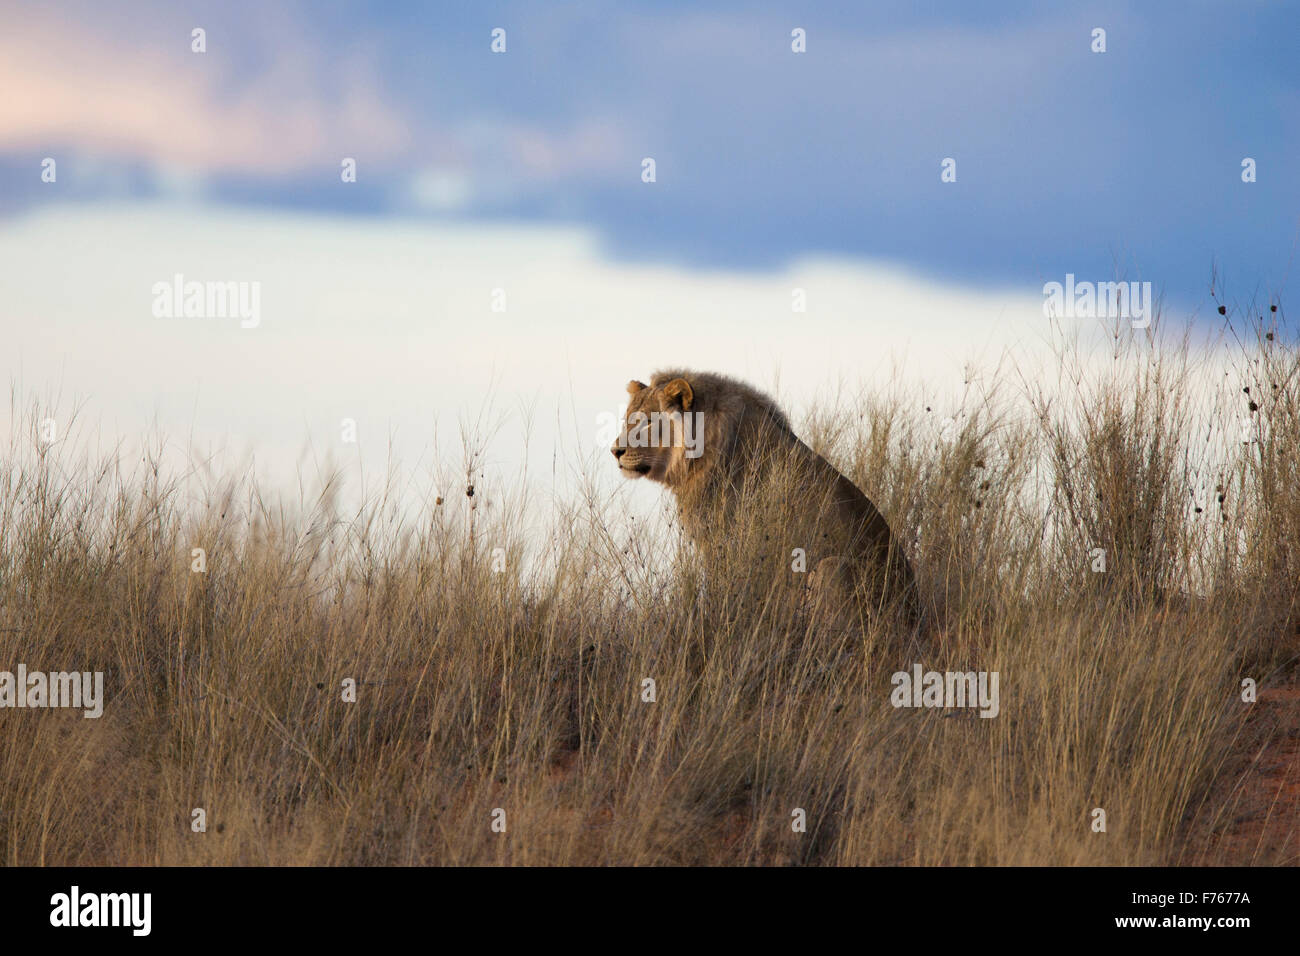 Male lion sitting on top of a sand dune watching something in the Kgalagadi Transfrontier Park - Stock Image